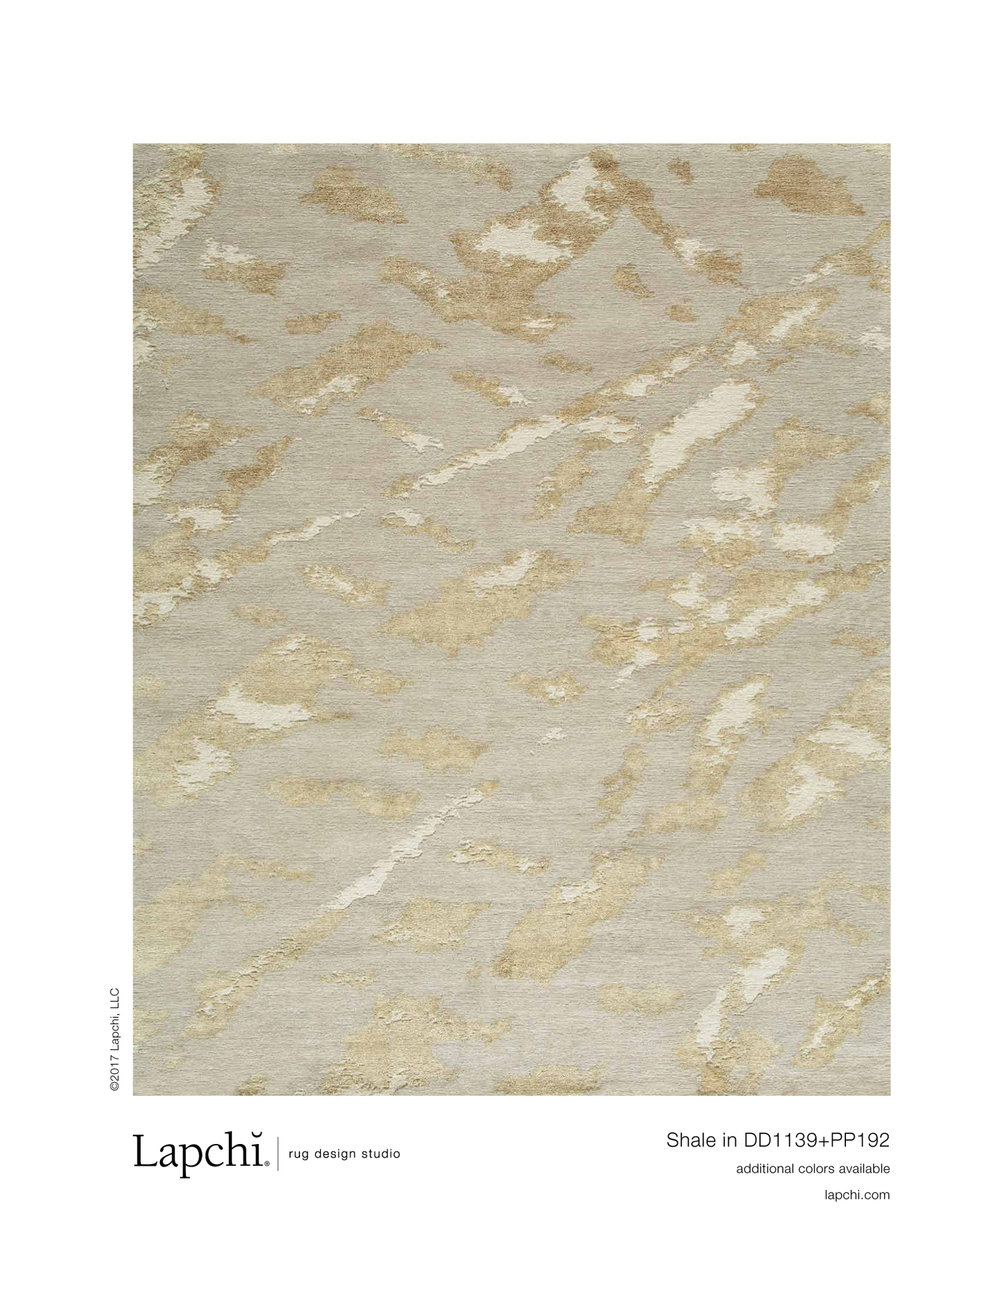 Shale area rug from Lapchi rug design studio.